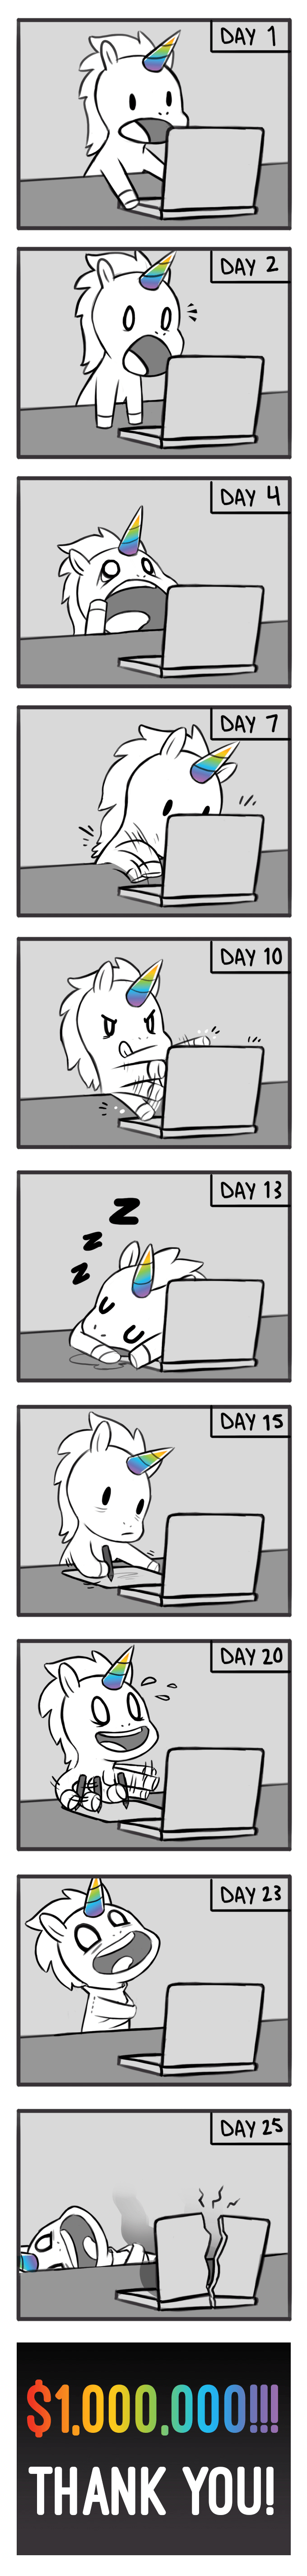 The story of our Kickstarter journey, as told by a unicorn.